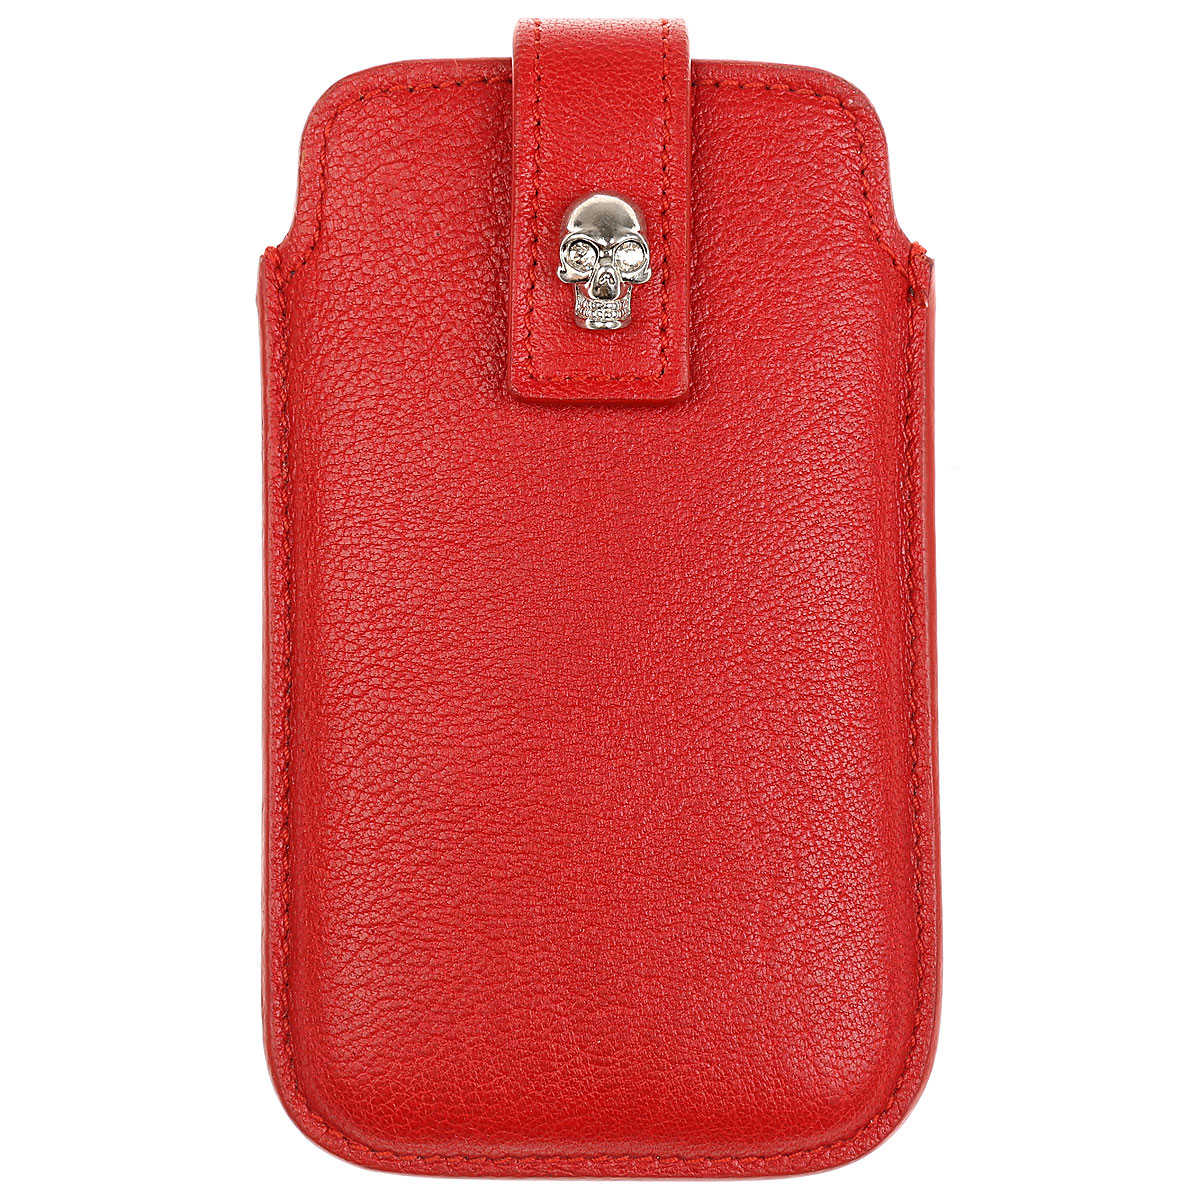 Alexander McQueen Womens Wallets in Outlet Red USA - GOOFASH